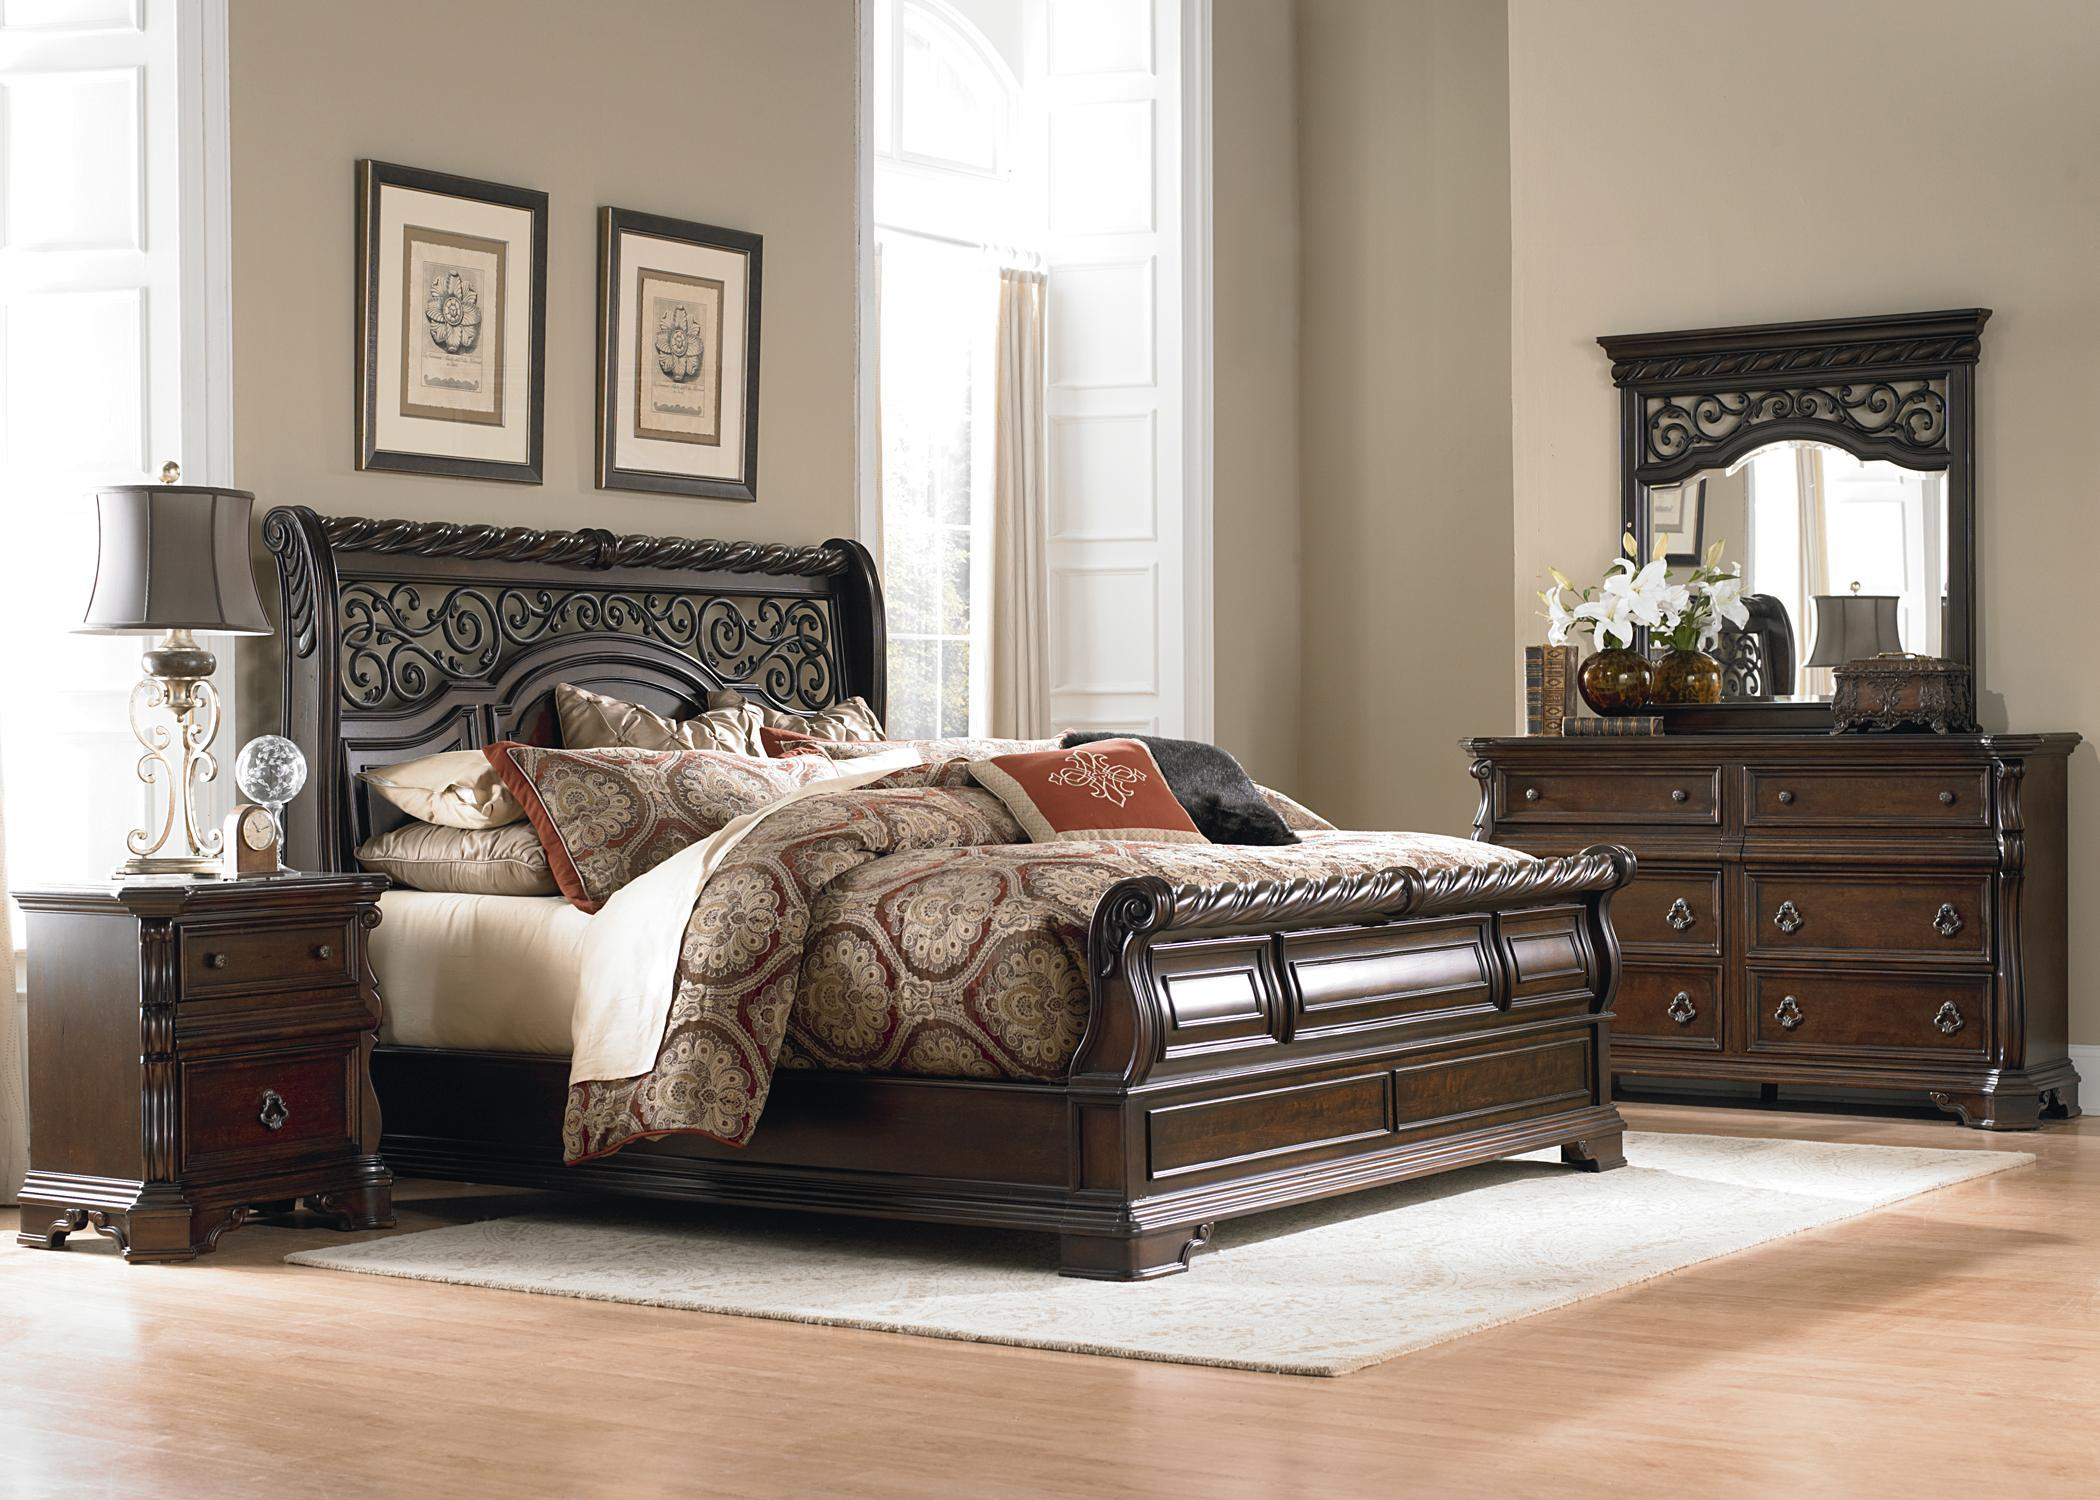 Liberty Furniture Arbor Place Queen Sleigh Bed, Dresser, Mirror & Nightsta - Item Number: LIBE-GRP-575-QUEENSUITE